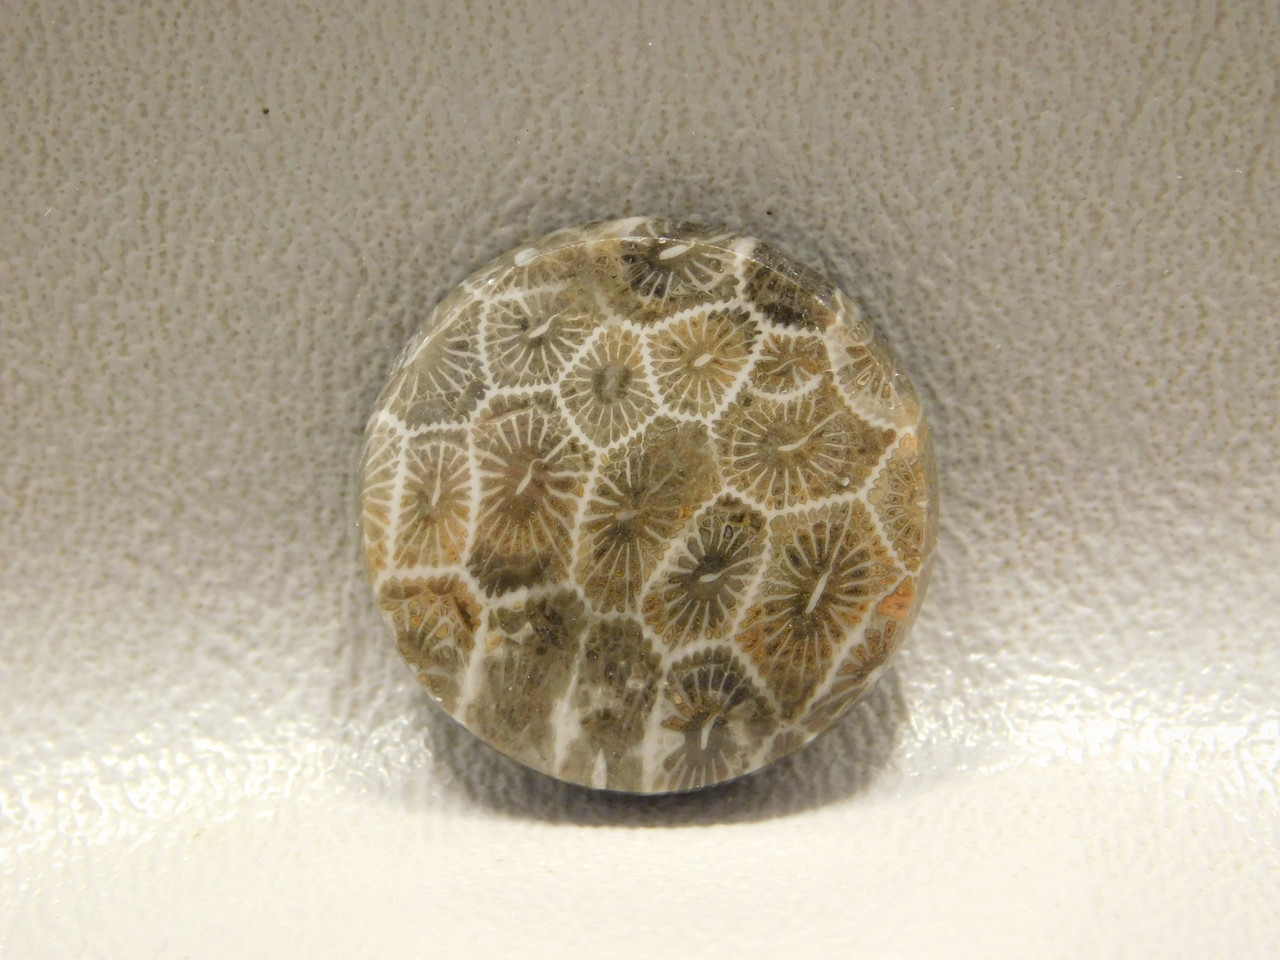 Flower Jasper Cabochon Fossil Loose Stones 22 mm Round #f2